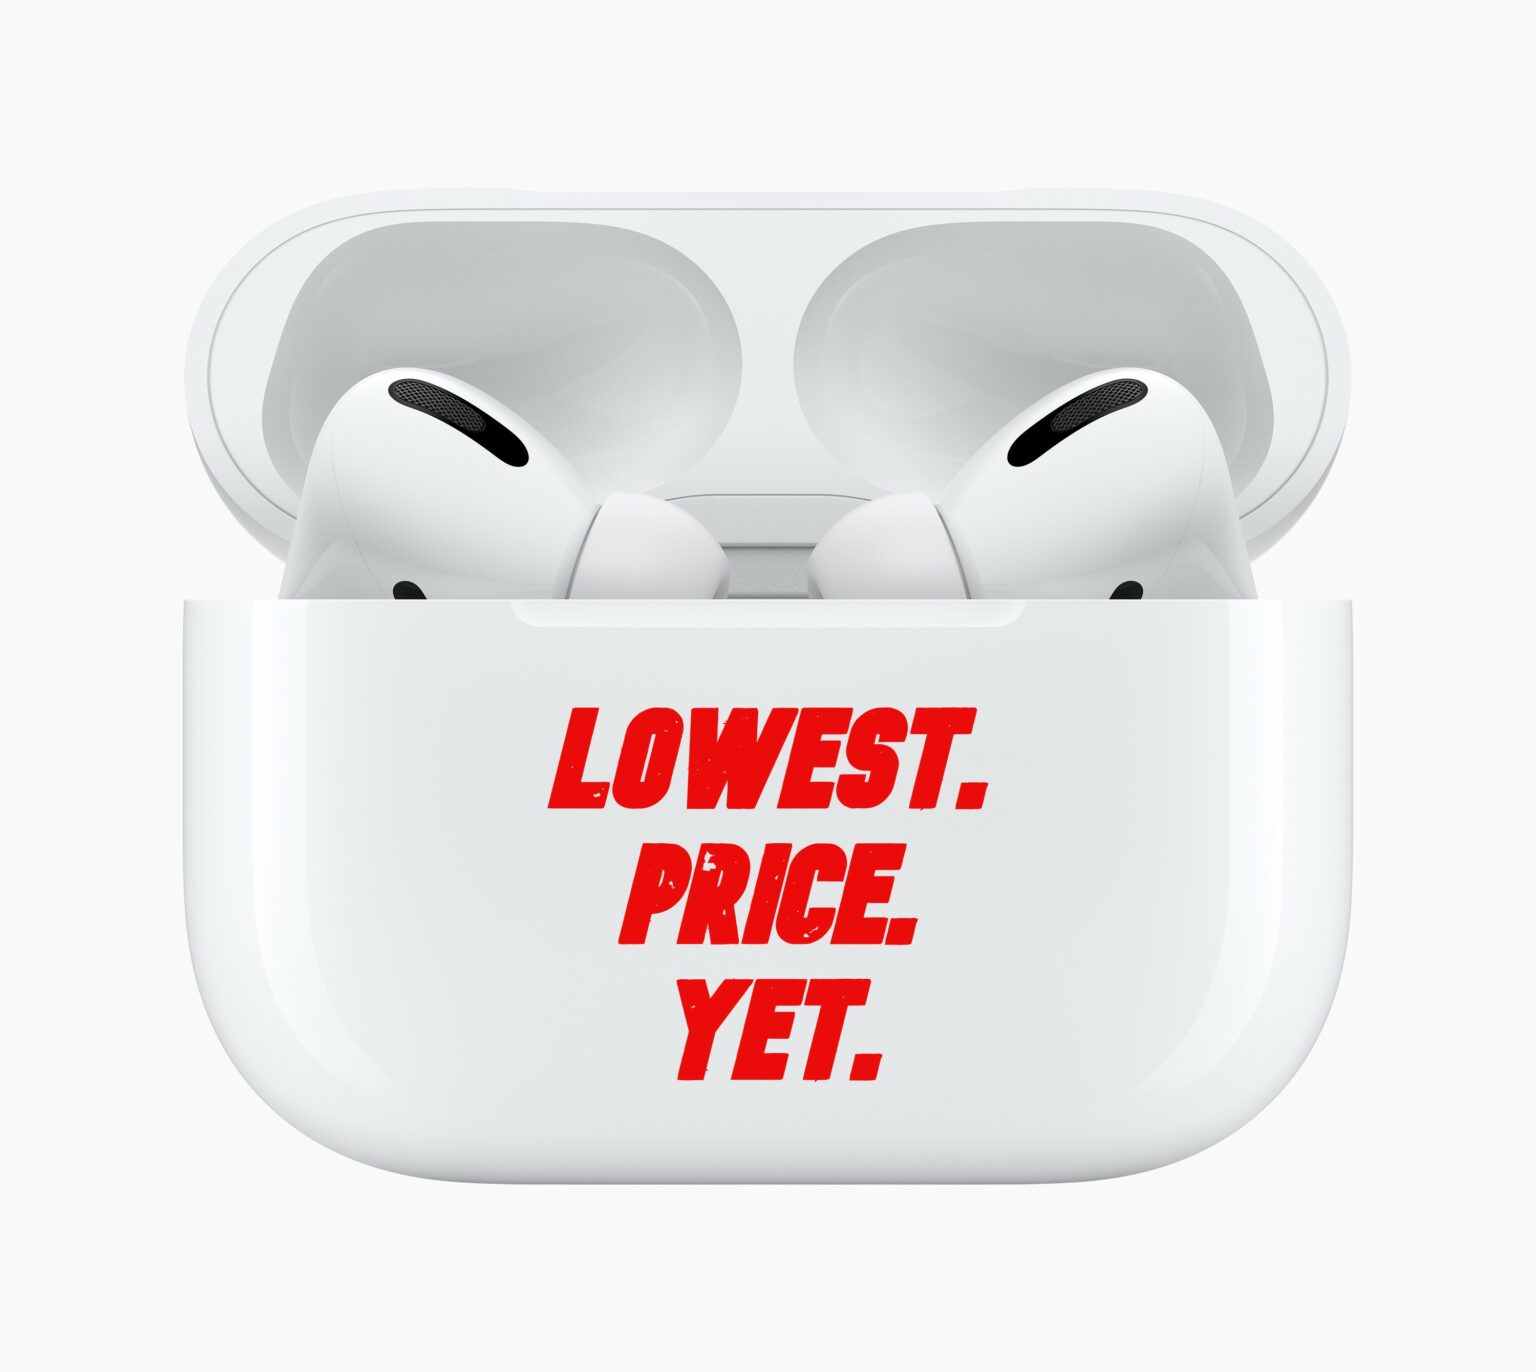 AirPods Pro sale: This is the lowest price yet